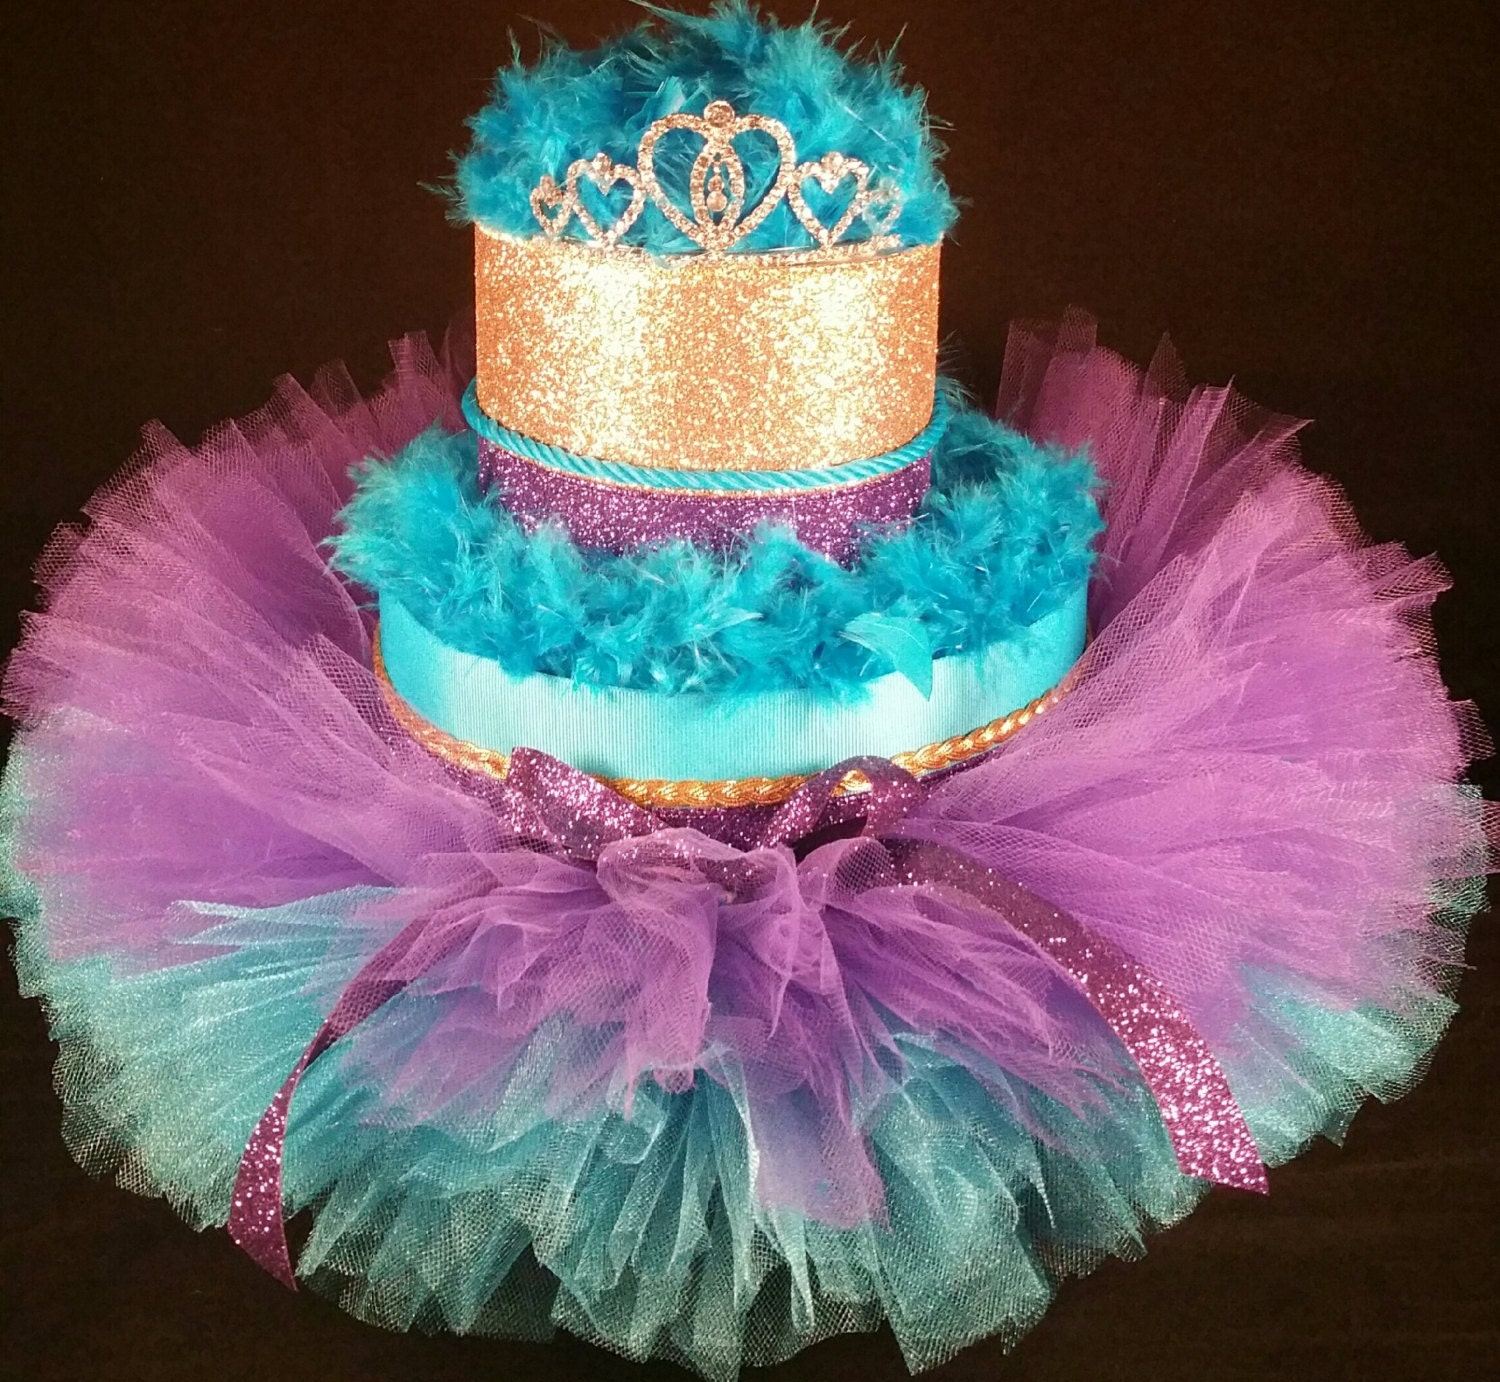 2 Tier Teal Purple & Gold DIAPER CAKE w princess tiara